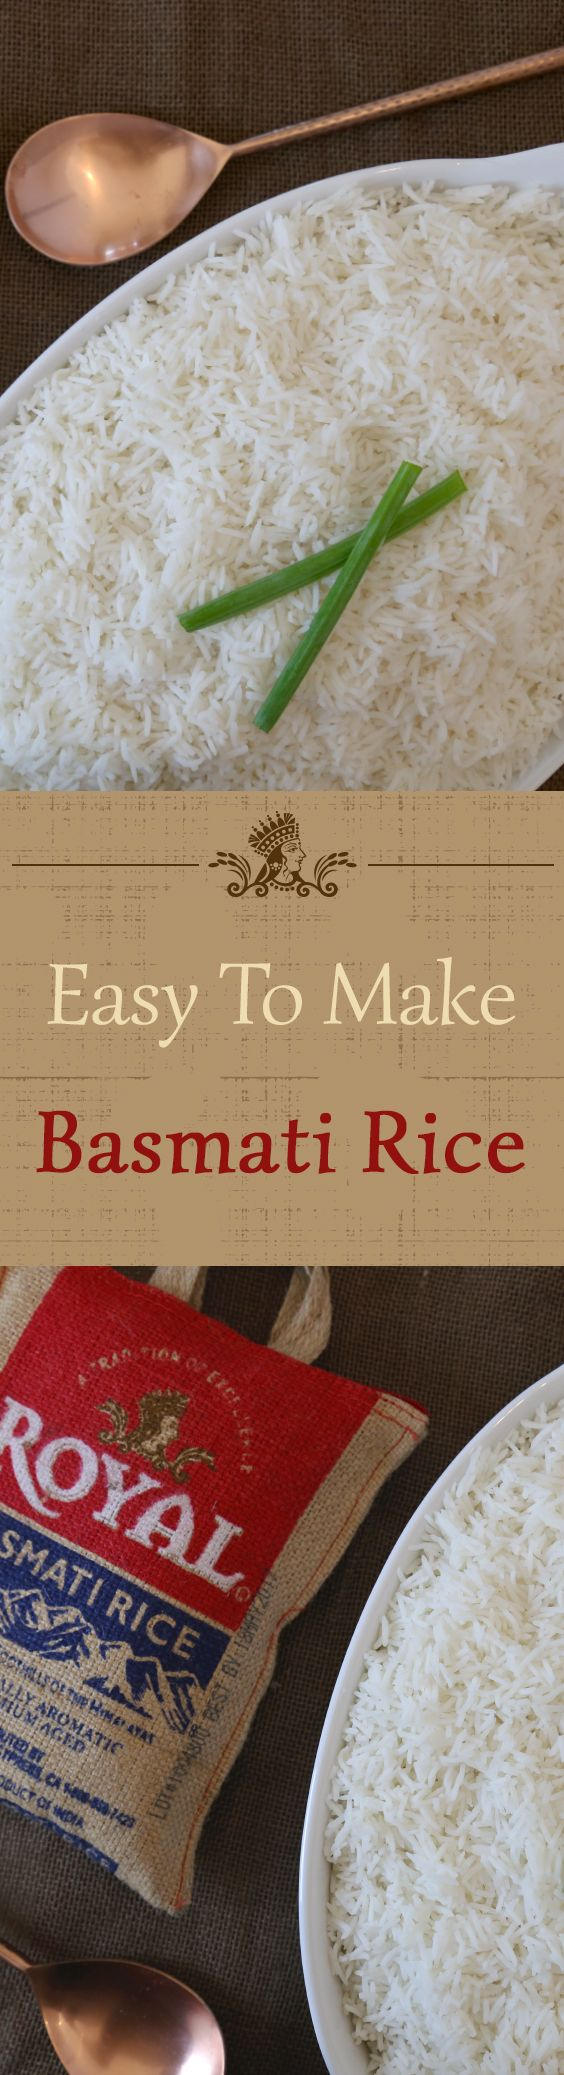 how to cook basmati in rice cooker